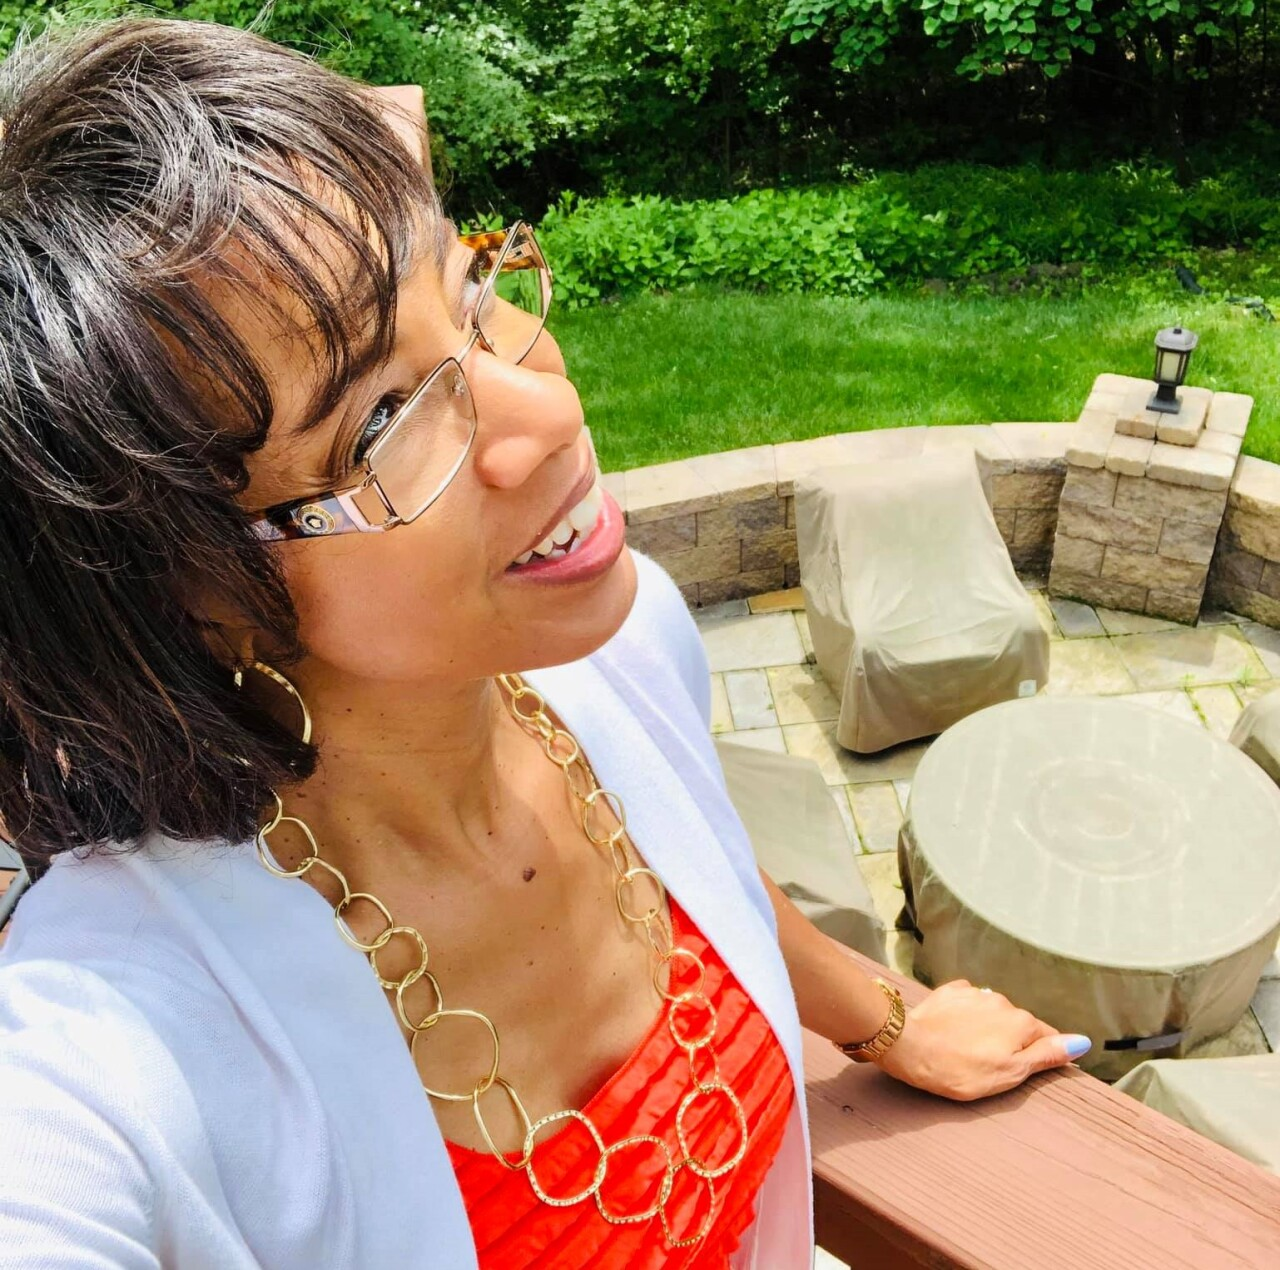 Sherry Hughes in a photo dated June 23, 2019, about a month before her breast cancer diagnosis. She is looking up into the sky and holding onto the railing of her back deck.